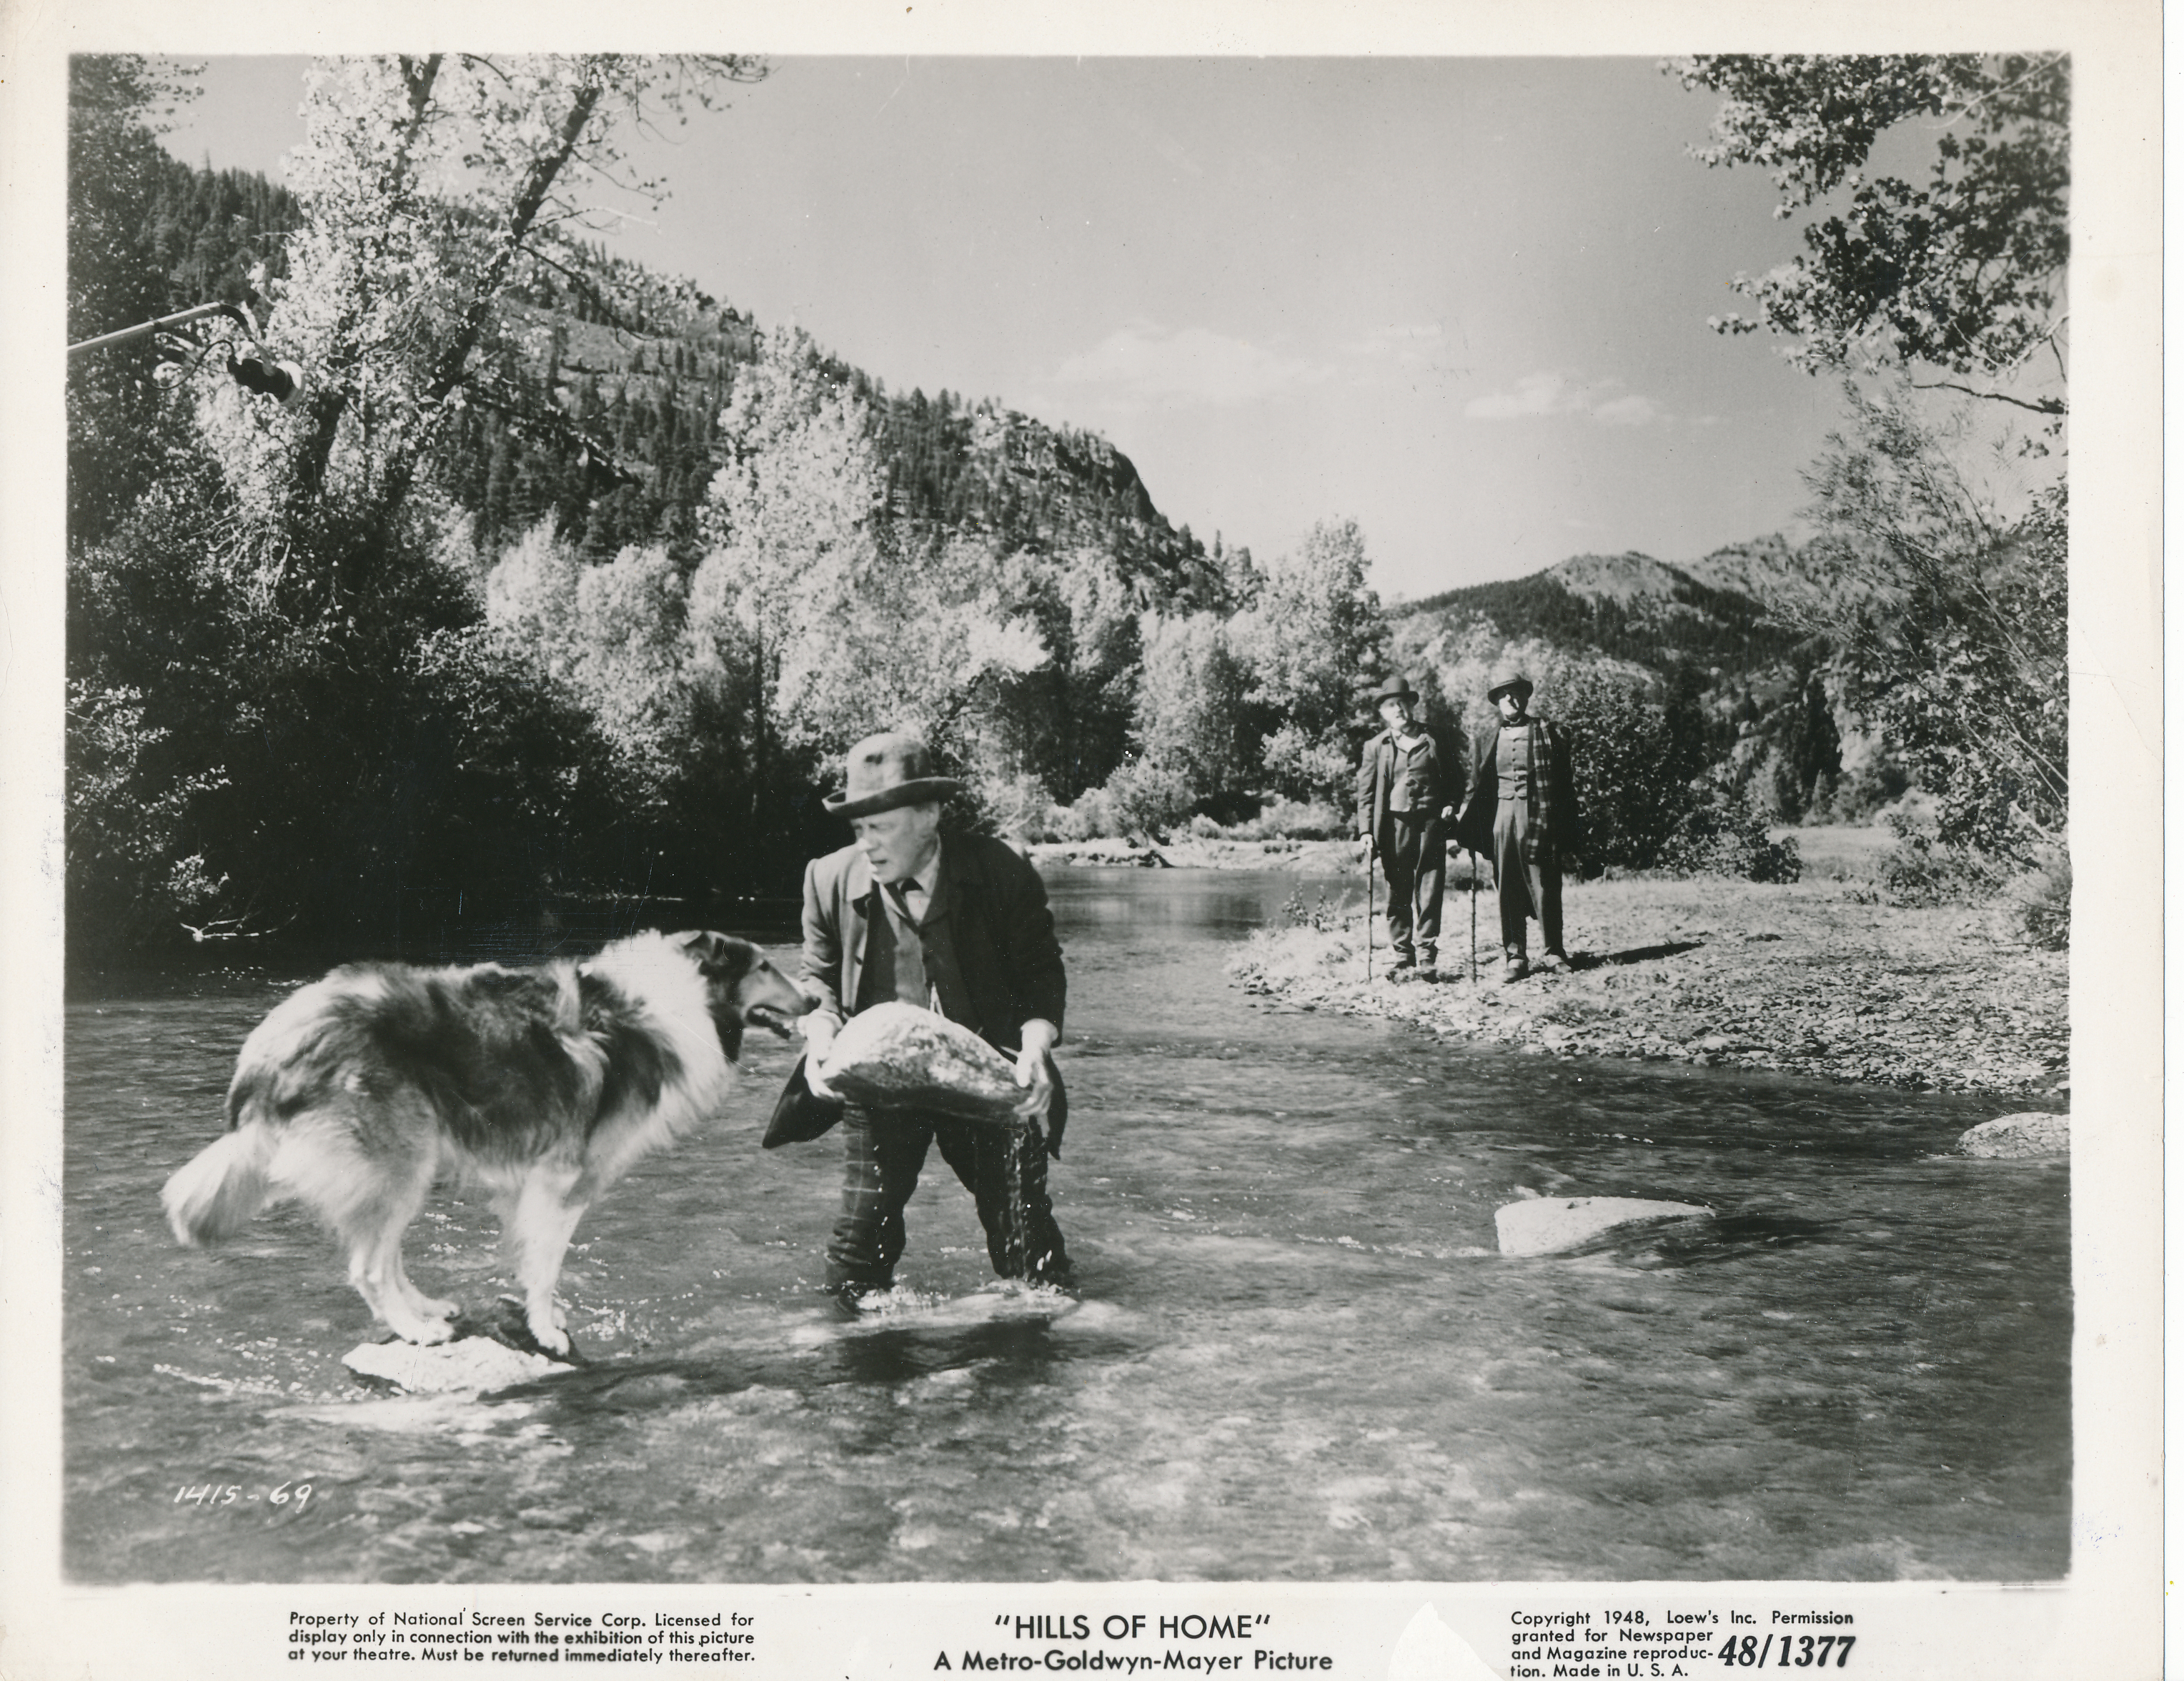 Edmund Gwenn and Pal in Hills of Home (1948)